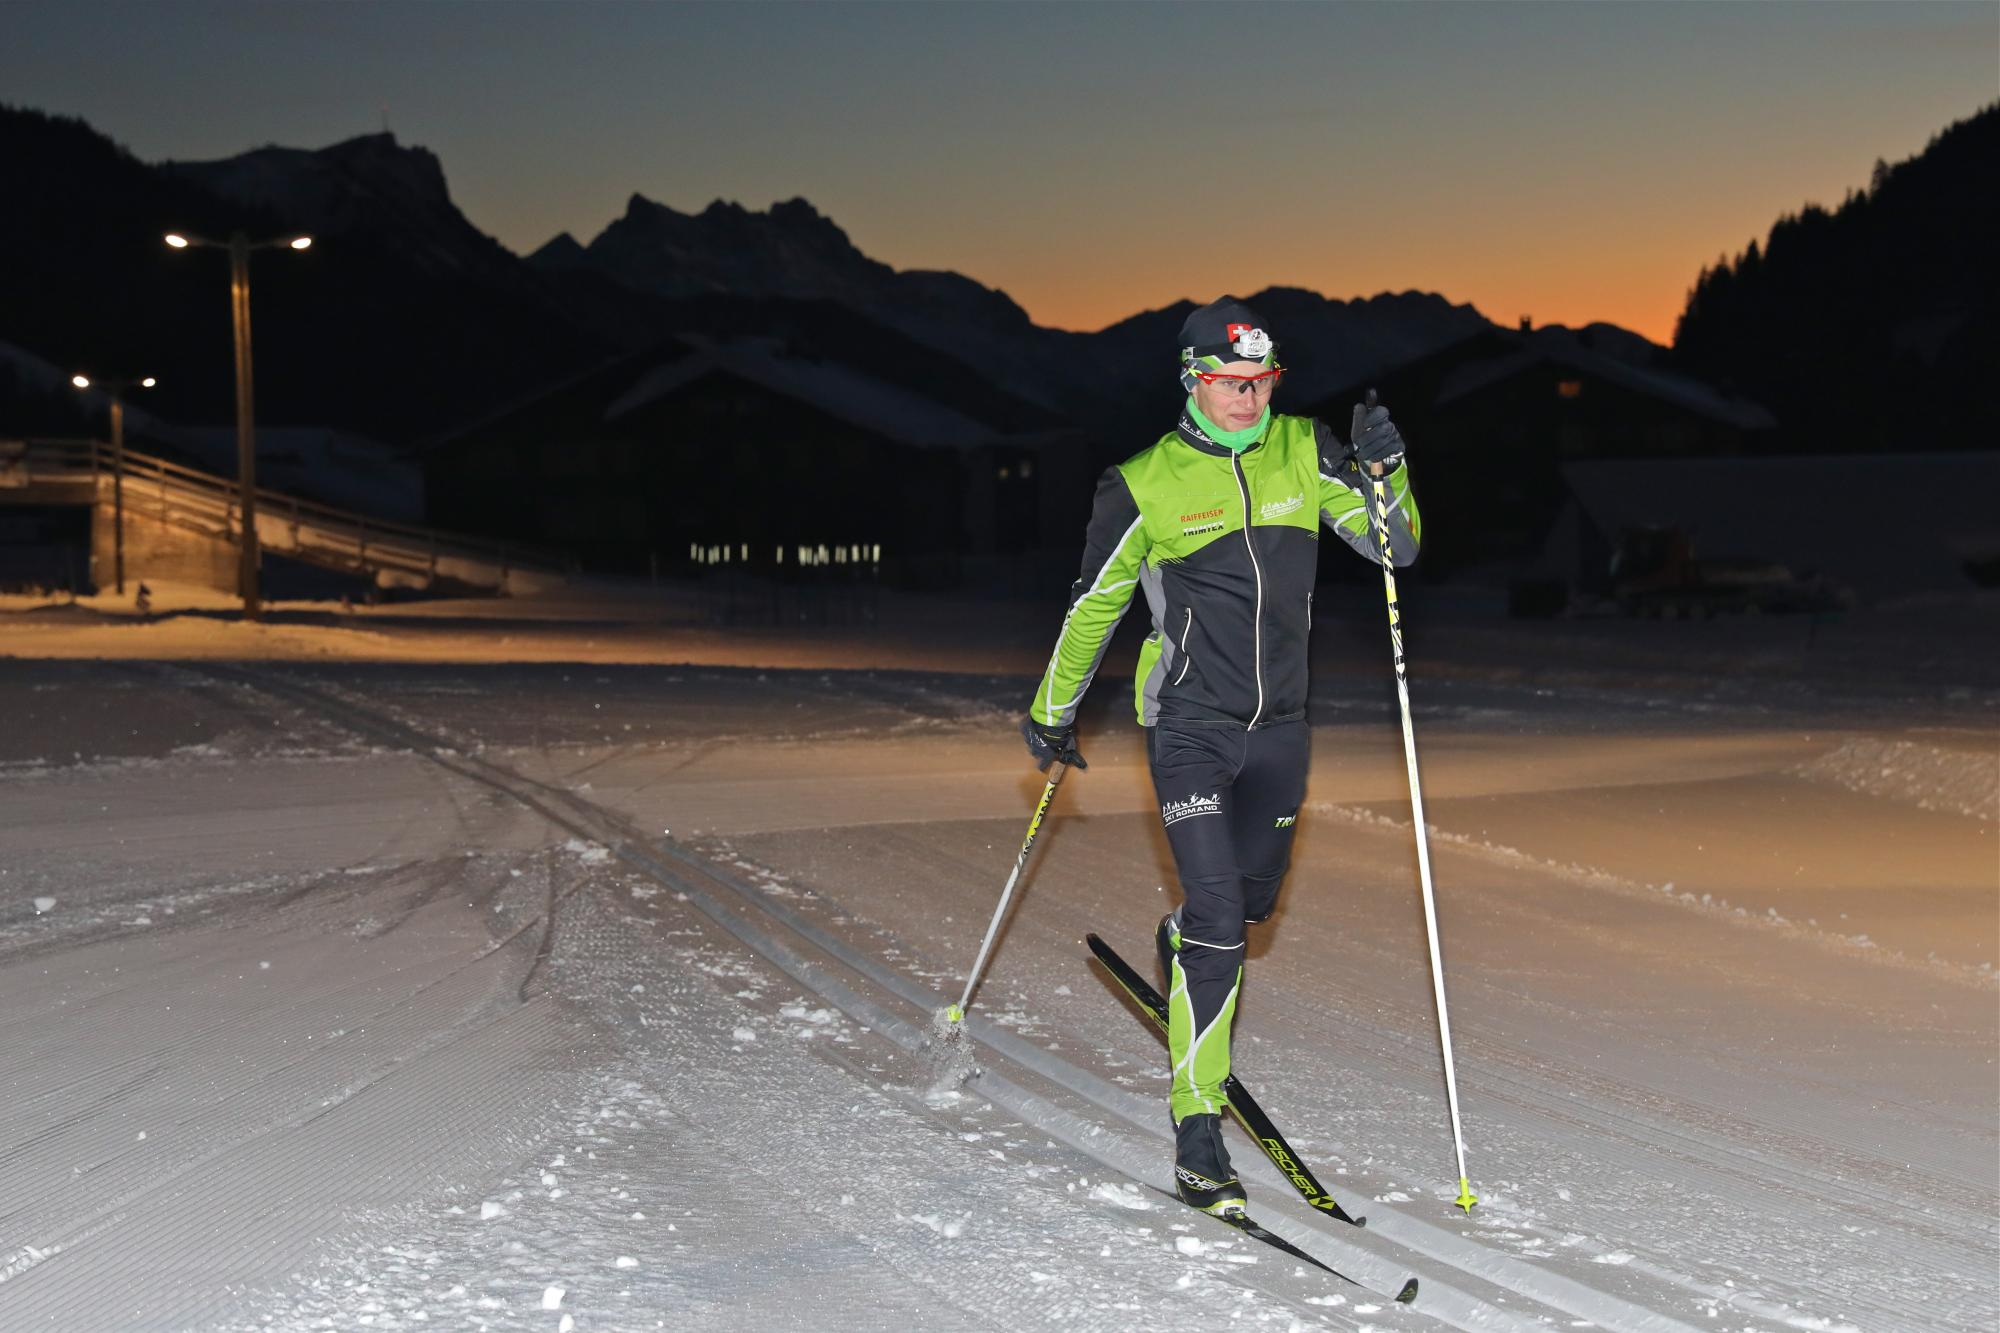 night-time cross-country skiing